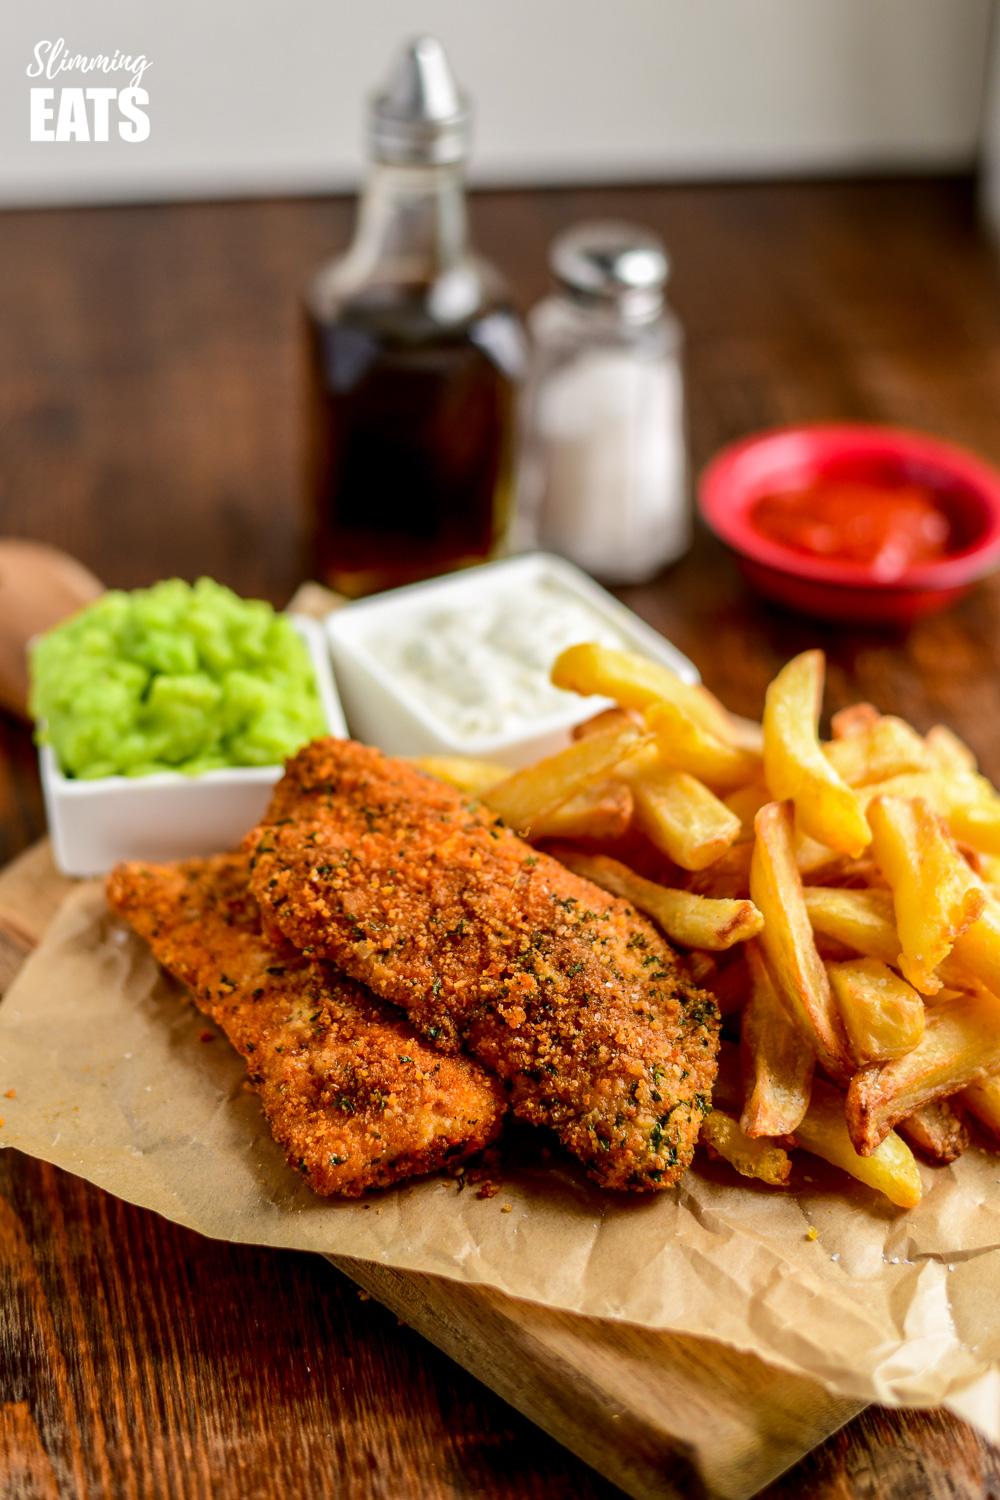 Actifry fish and chips on parchment with mushy peas and tartare sauce